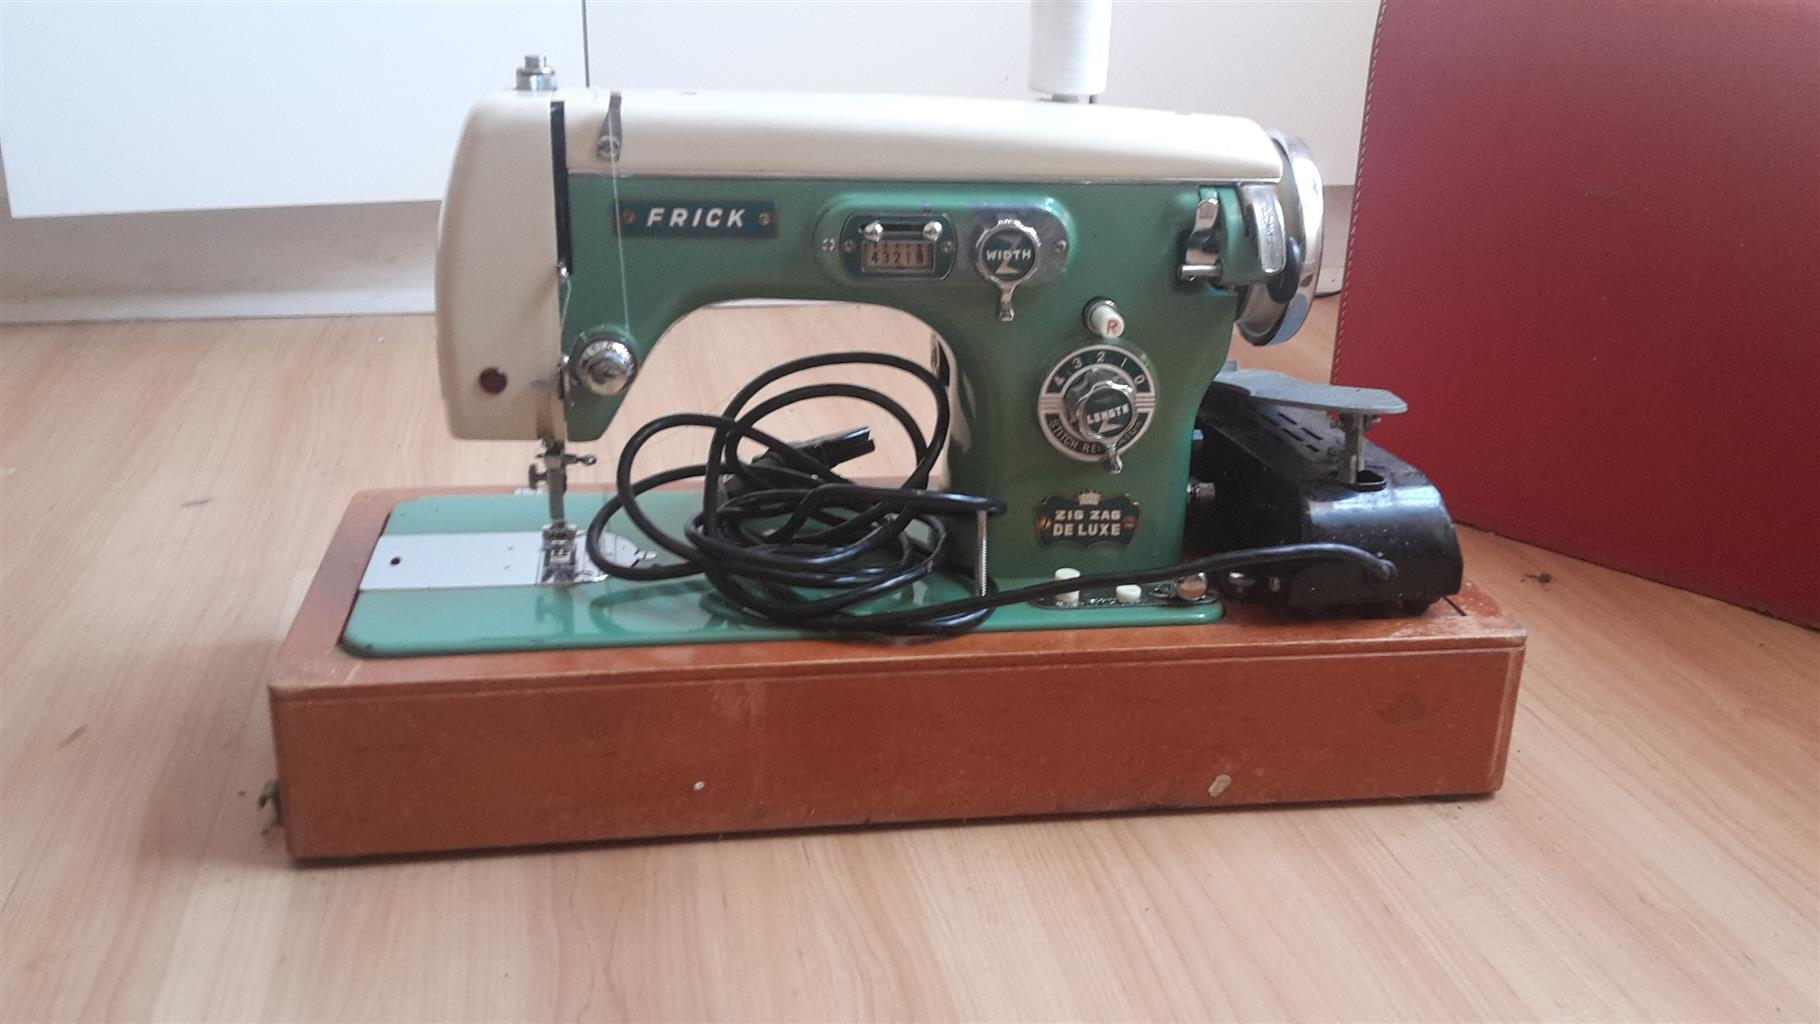 Sewing machine Frick